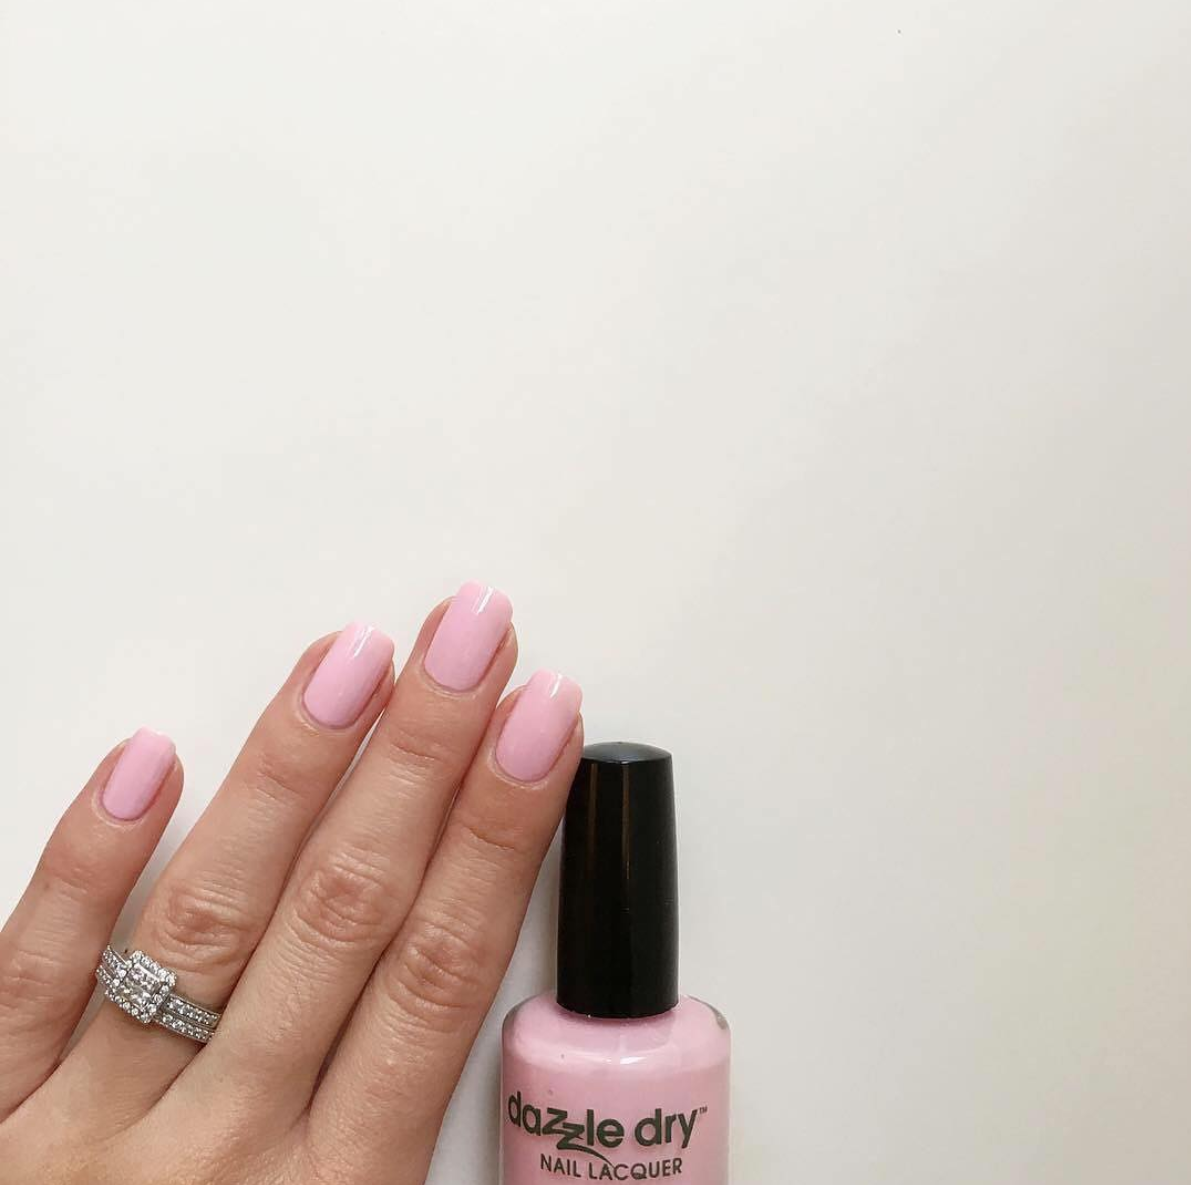 Dazzle Dry nail lacquers